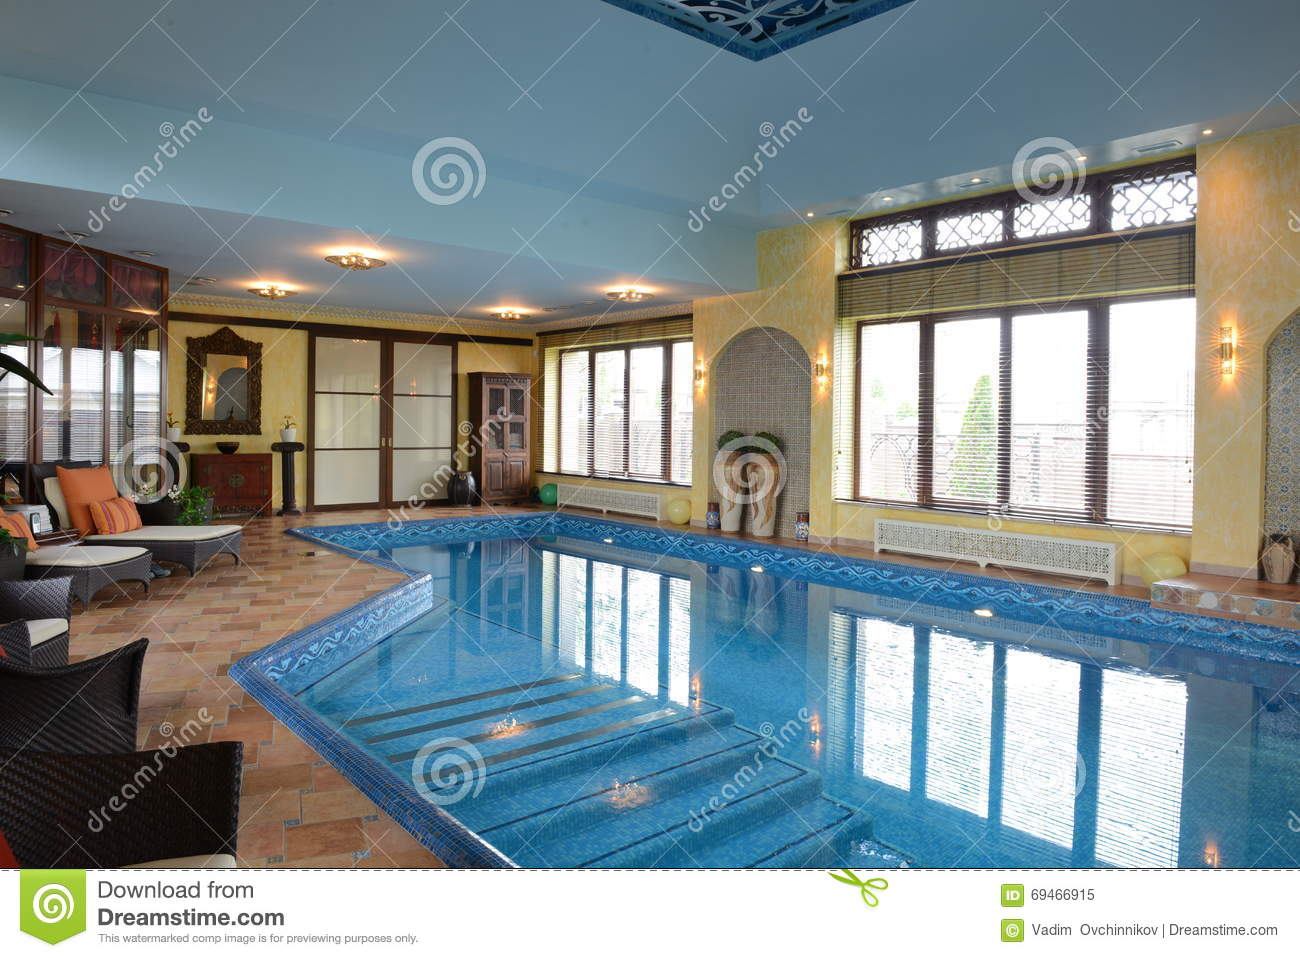 Home indoor pool stock image. Image of property, family ... on entry door designs for home, water fountain designs for home, a view designs for home, wheelchair ramp designs for home, deck designs for home, english pub designs for home, main gate designs for home, bar designs for home,